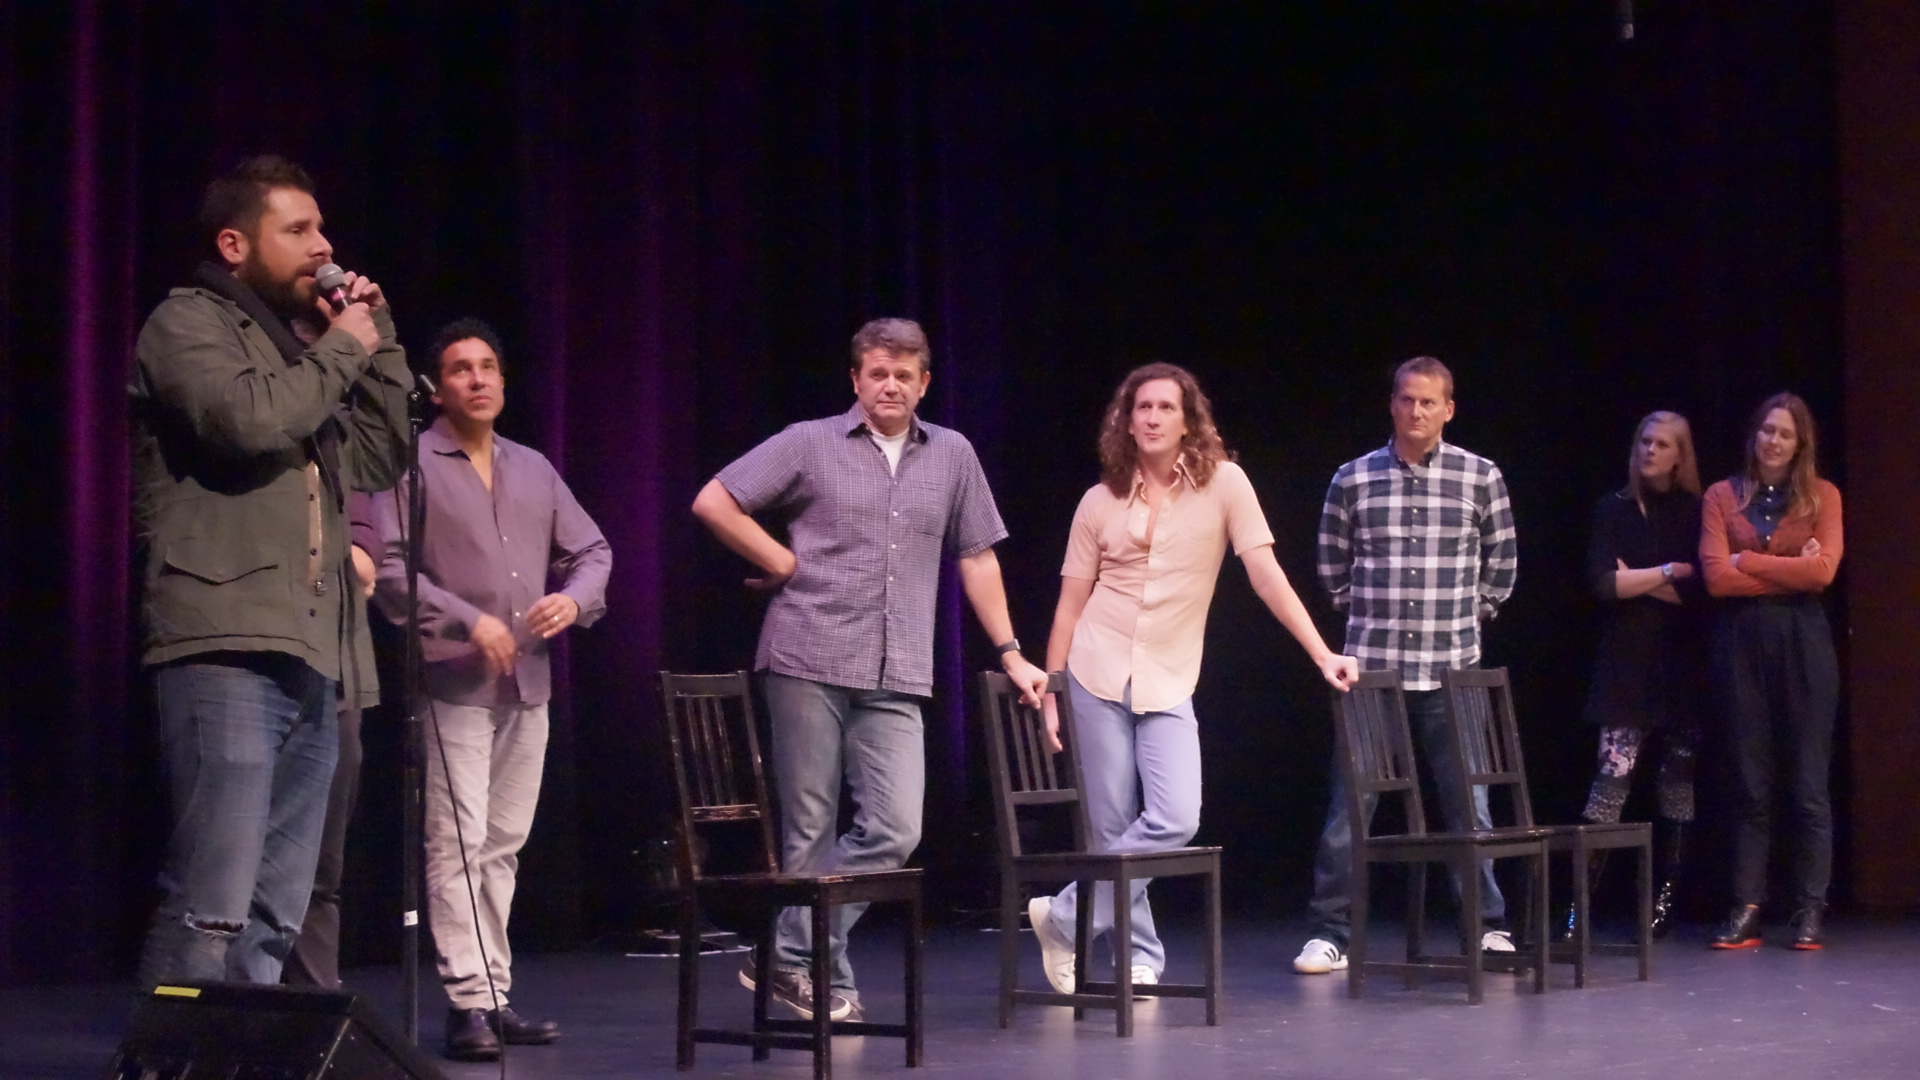 James Roday, Oscar Nunez, John Michael Higgins, Ian Brennan, Michael Hitchcock, Janet Varney and Jessica Makinson at Theme Park at SF Sketchfest 2016. Photo by Steve Agee.